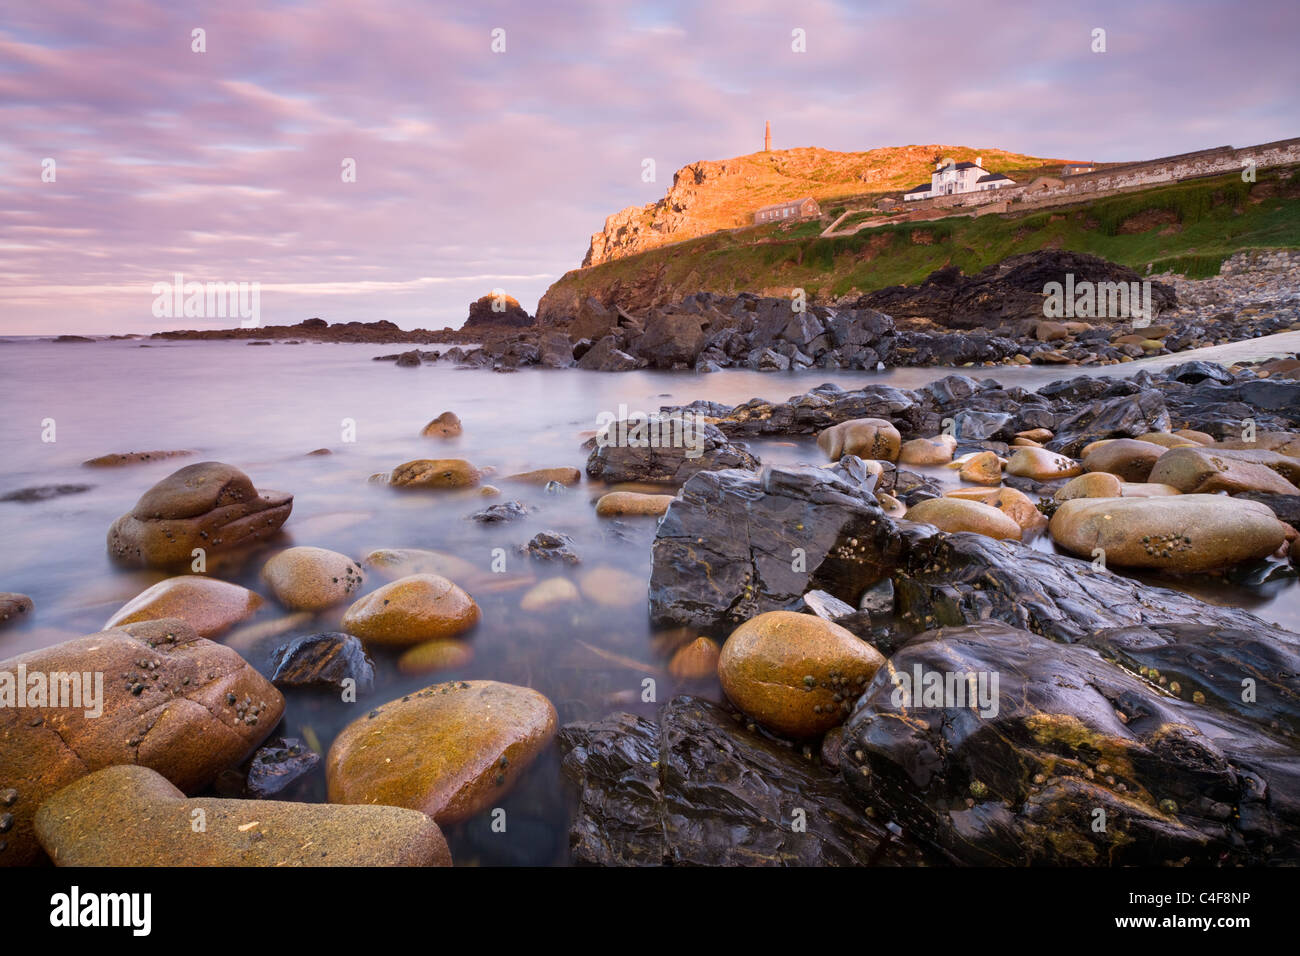 Rocky seashore at Priest's Cove beneath Cape Cornwall, St Just, Cornwall, England. Autumn (October) 2009. - Stock Image